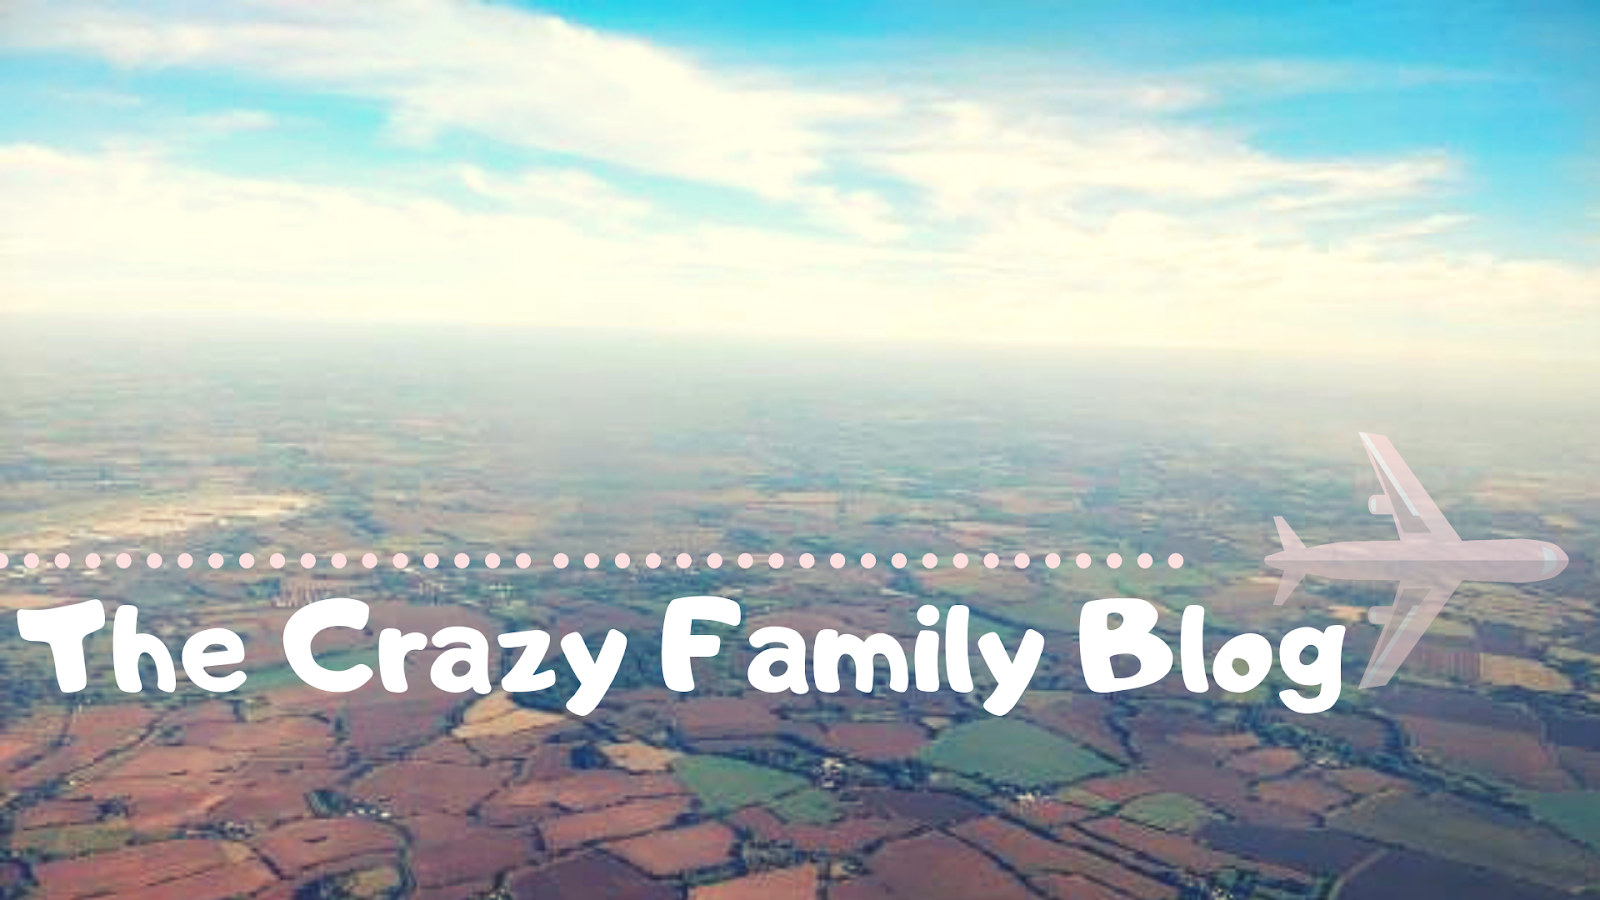 The Crazy Family Blog